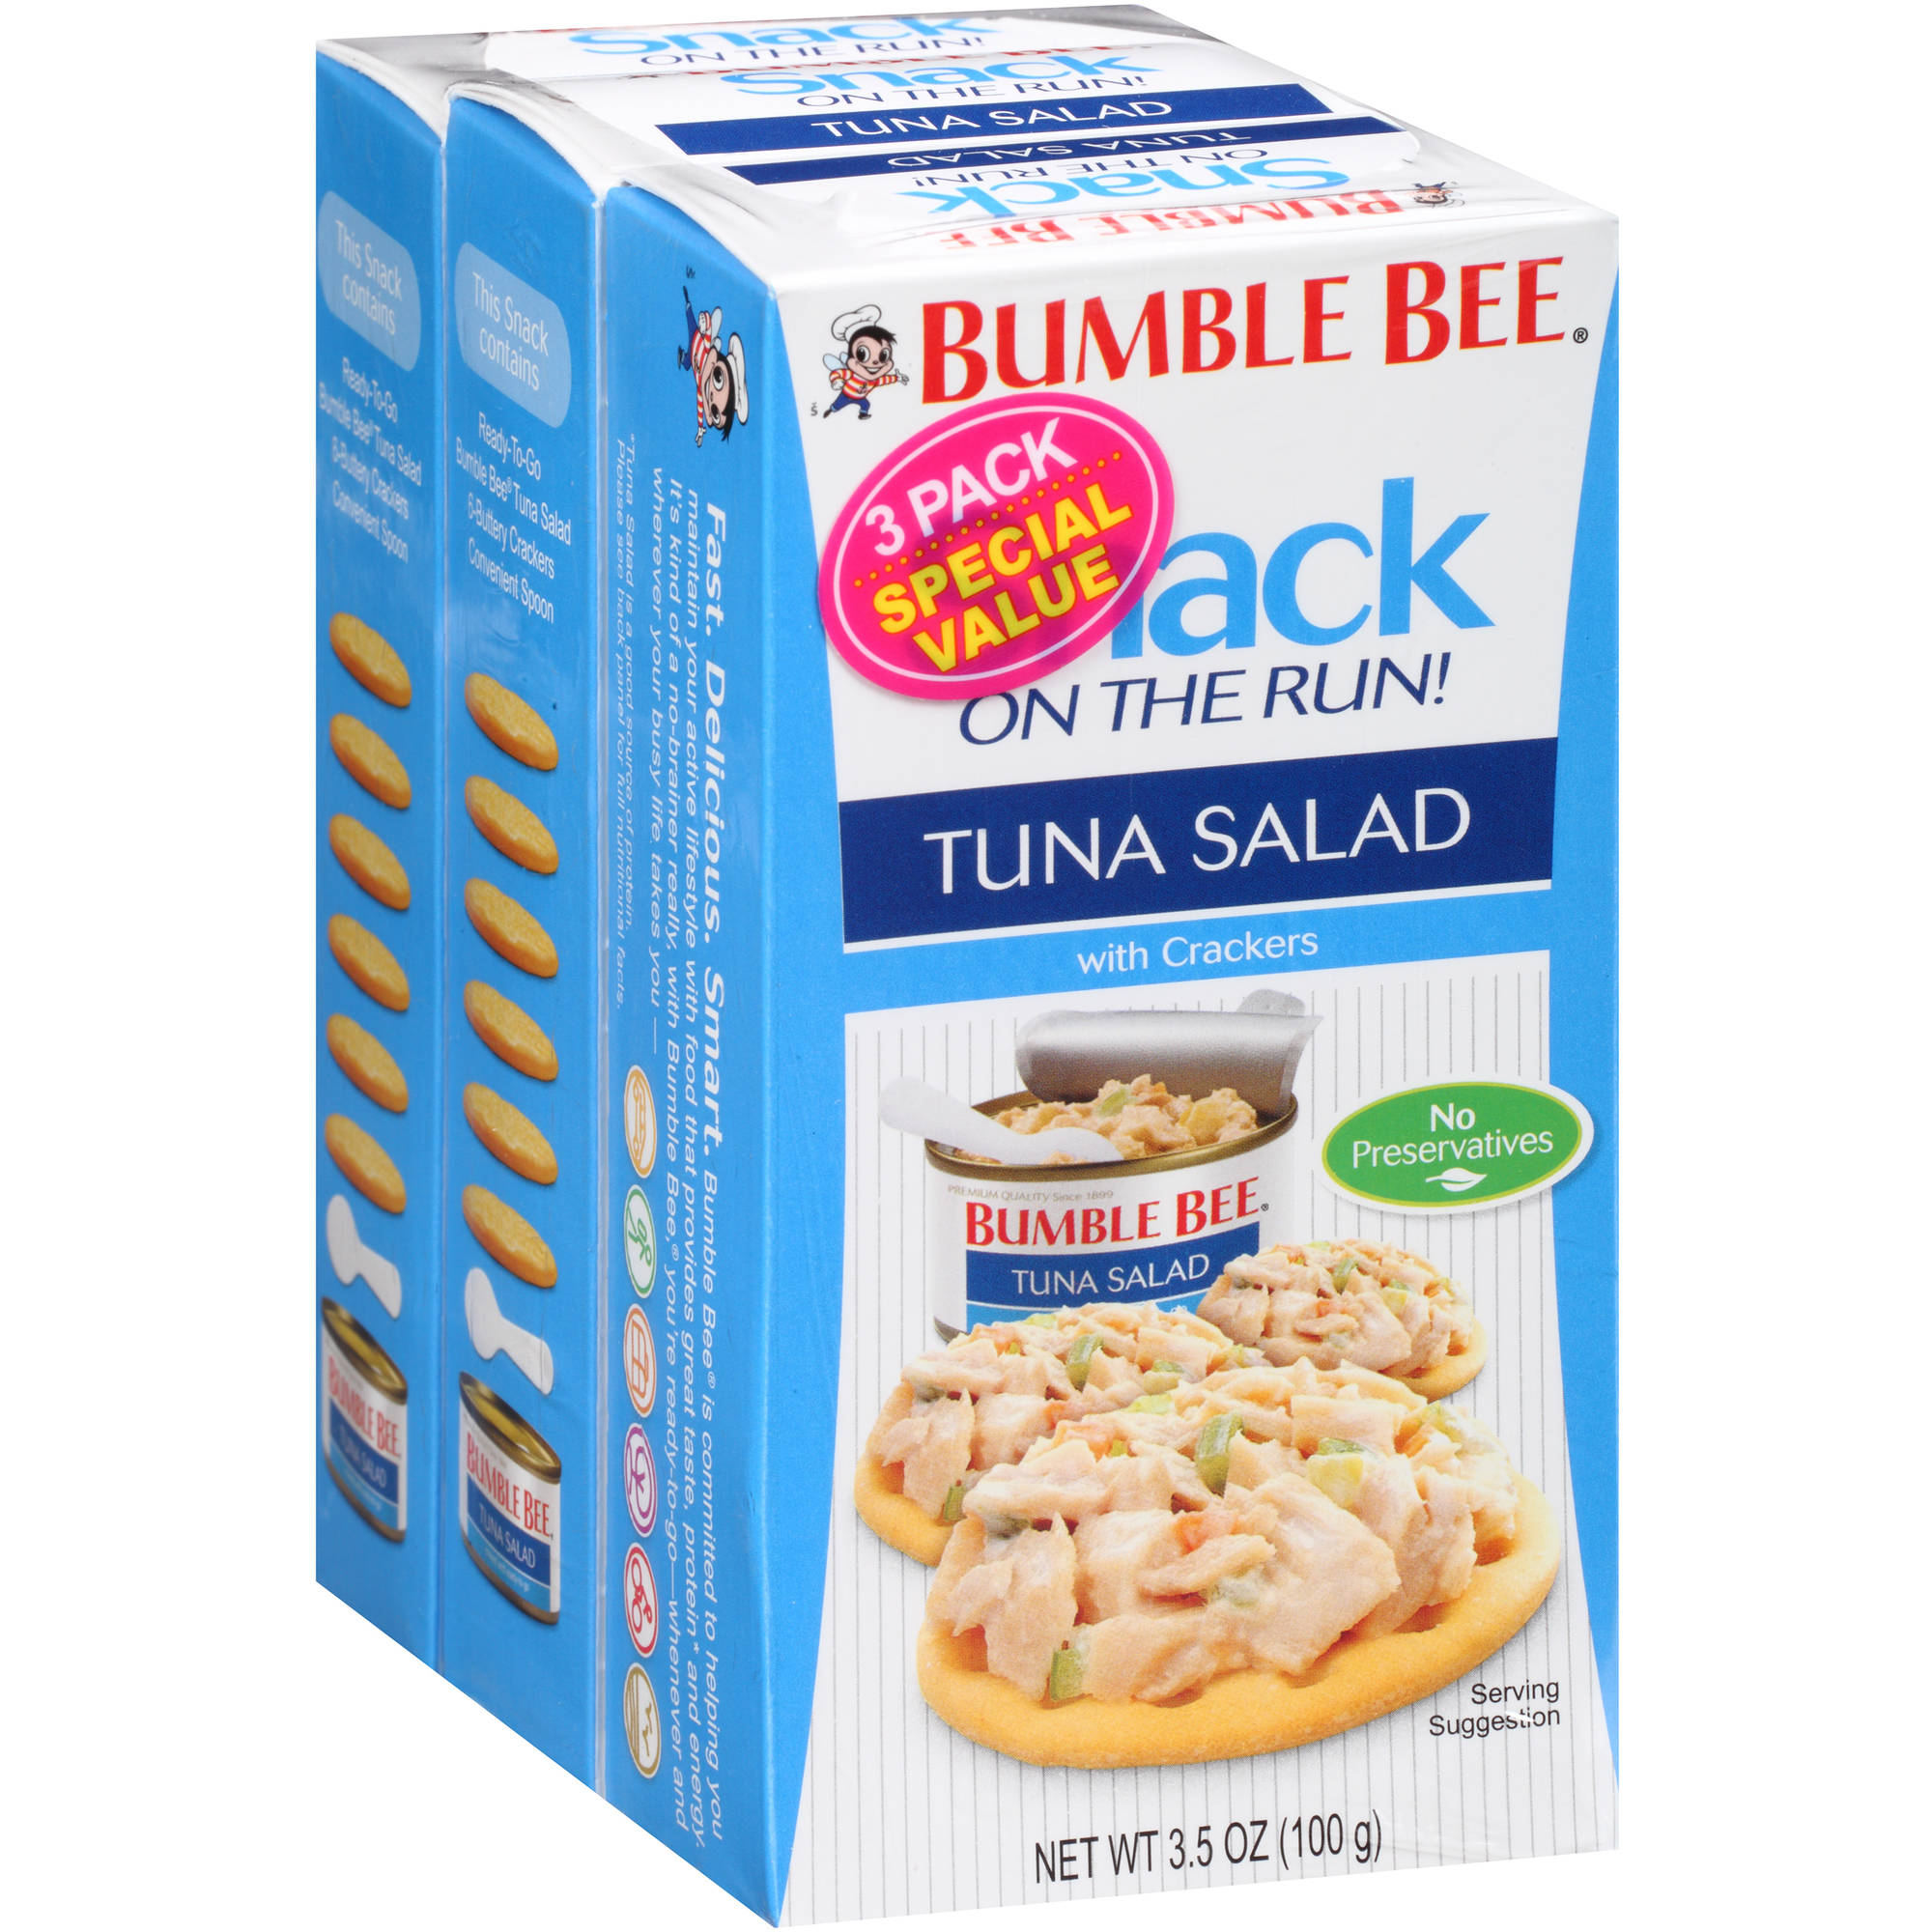 Bumble Bee Snack on the Run! Tuna Salad with Crackers, 3.5 oz, (Pack of 3)